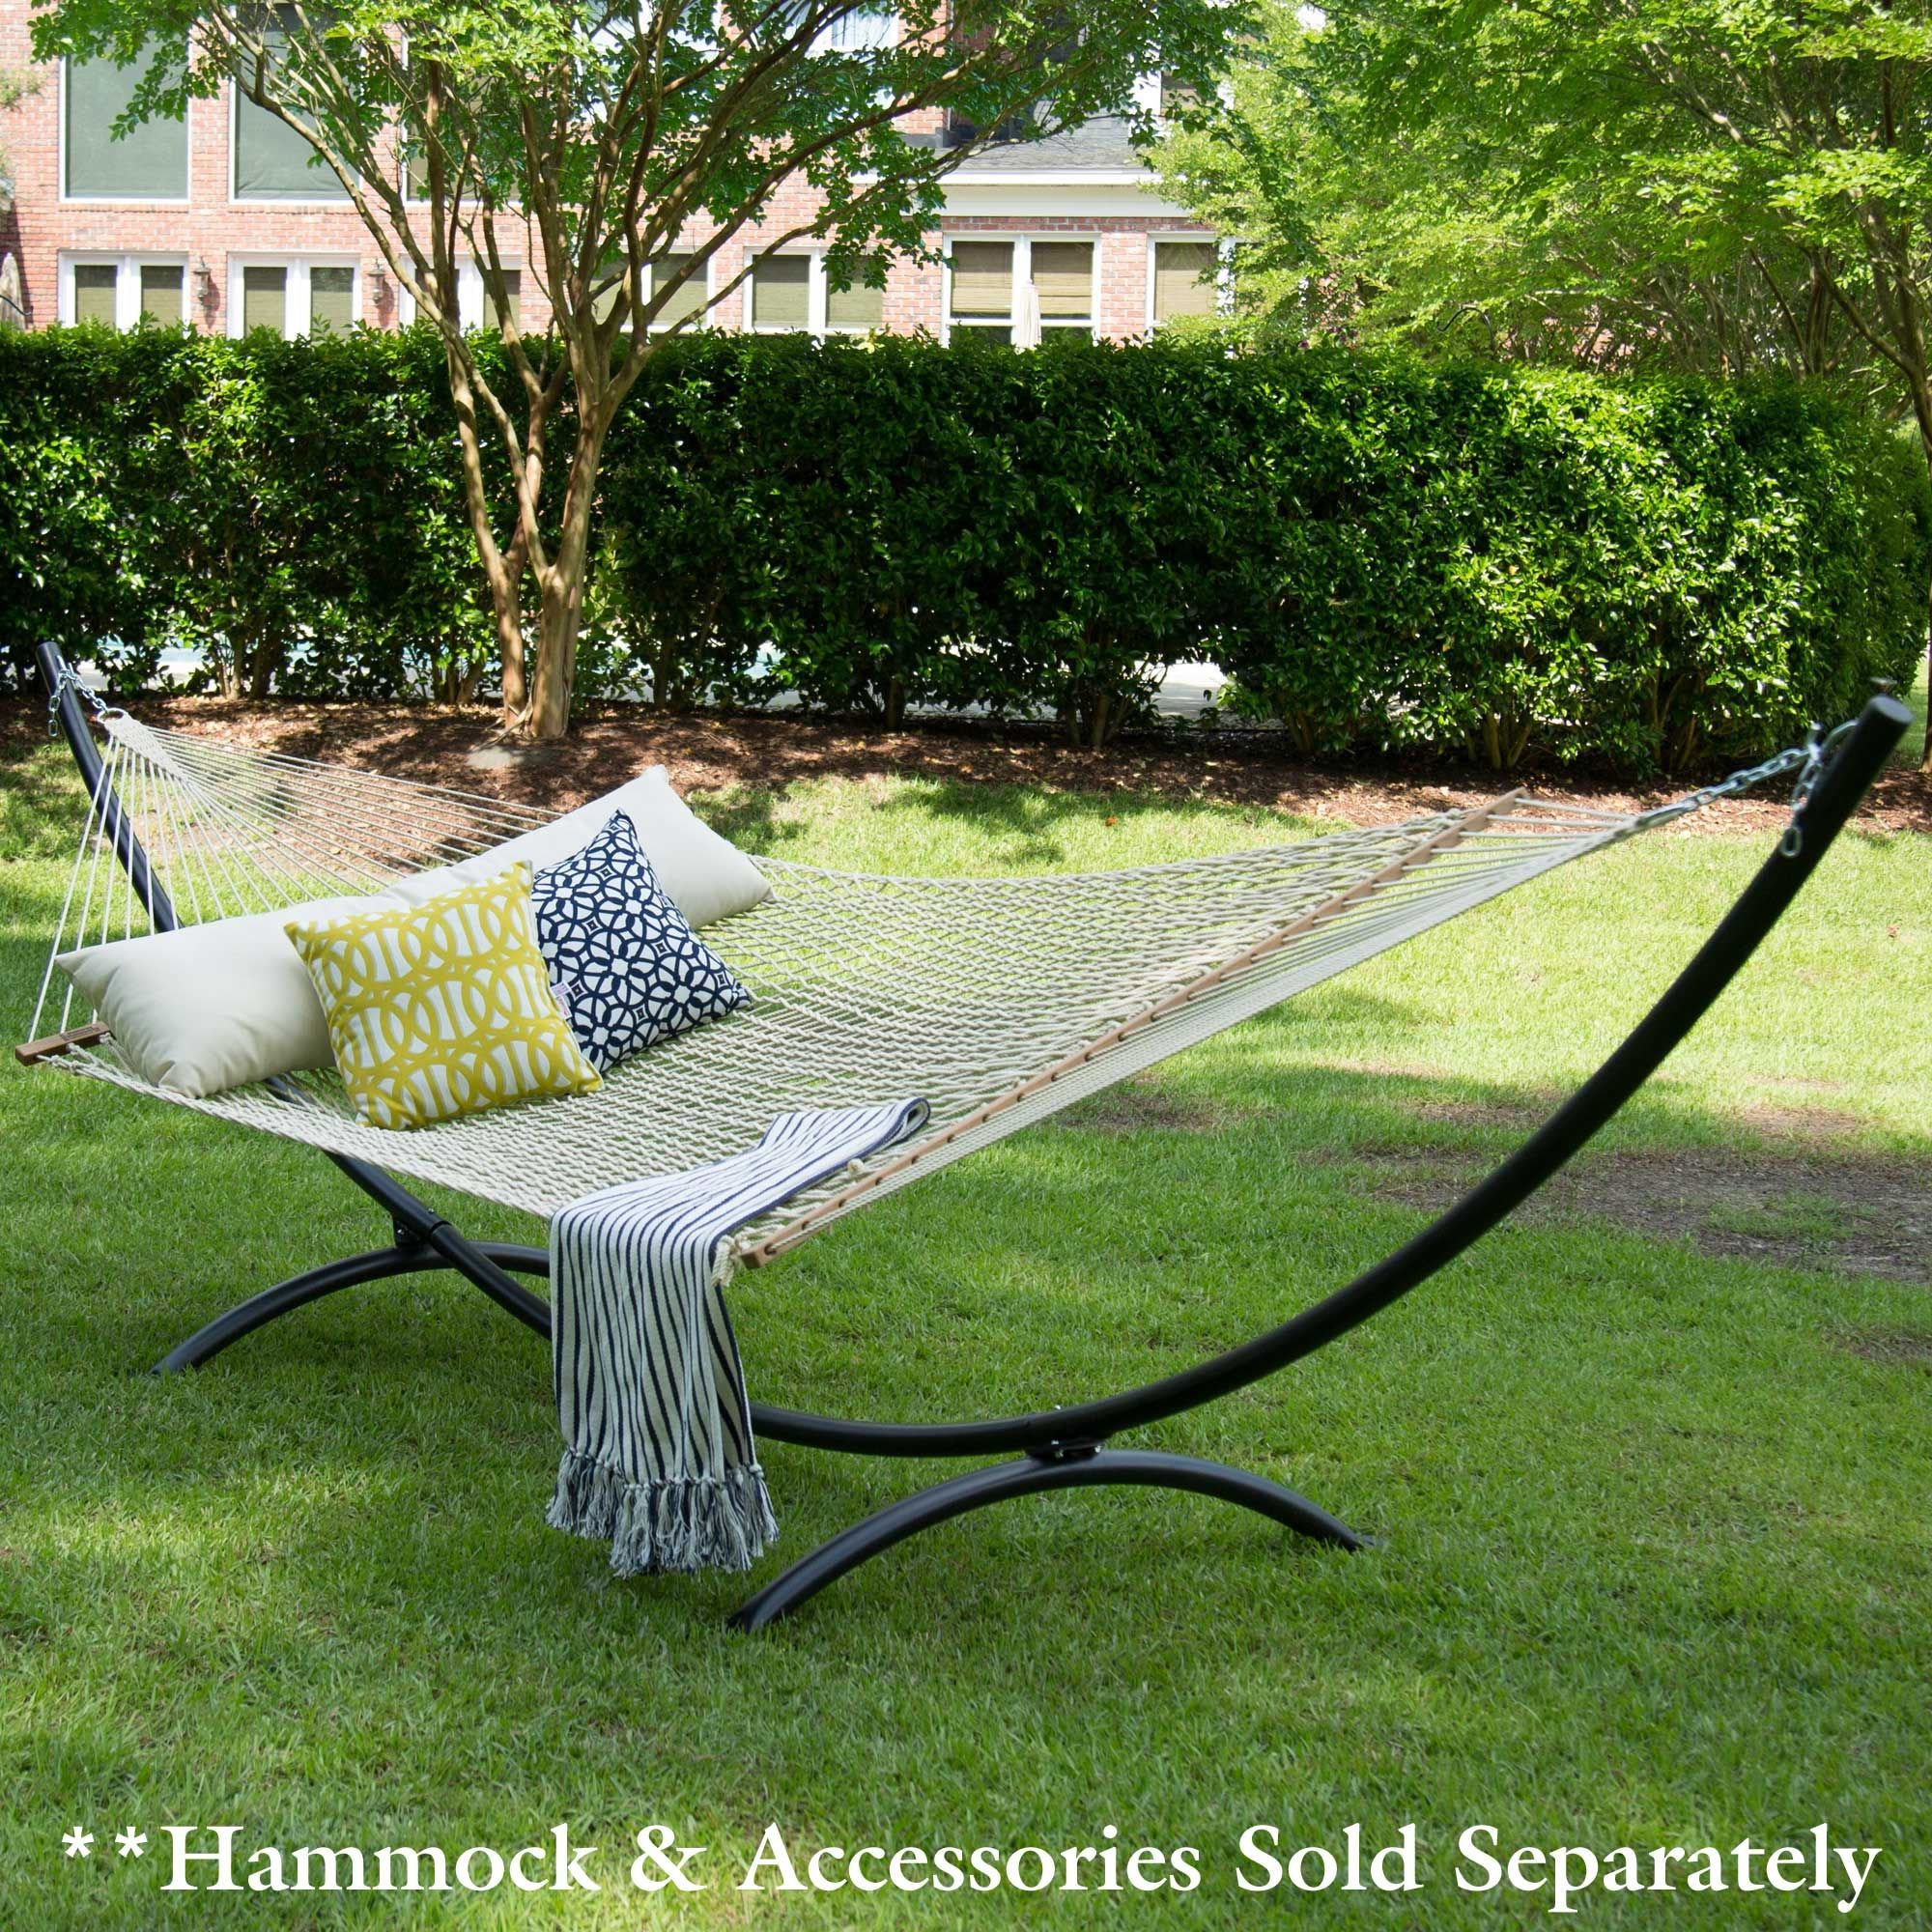 hammock collapsible for upscale patios amazon bliss stand teal hbhsko vivere sightly steel stands hammocks ga wooden awesome with